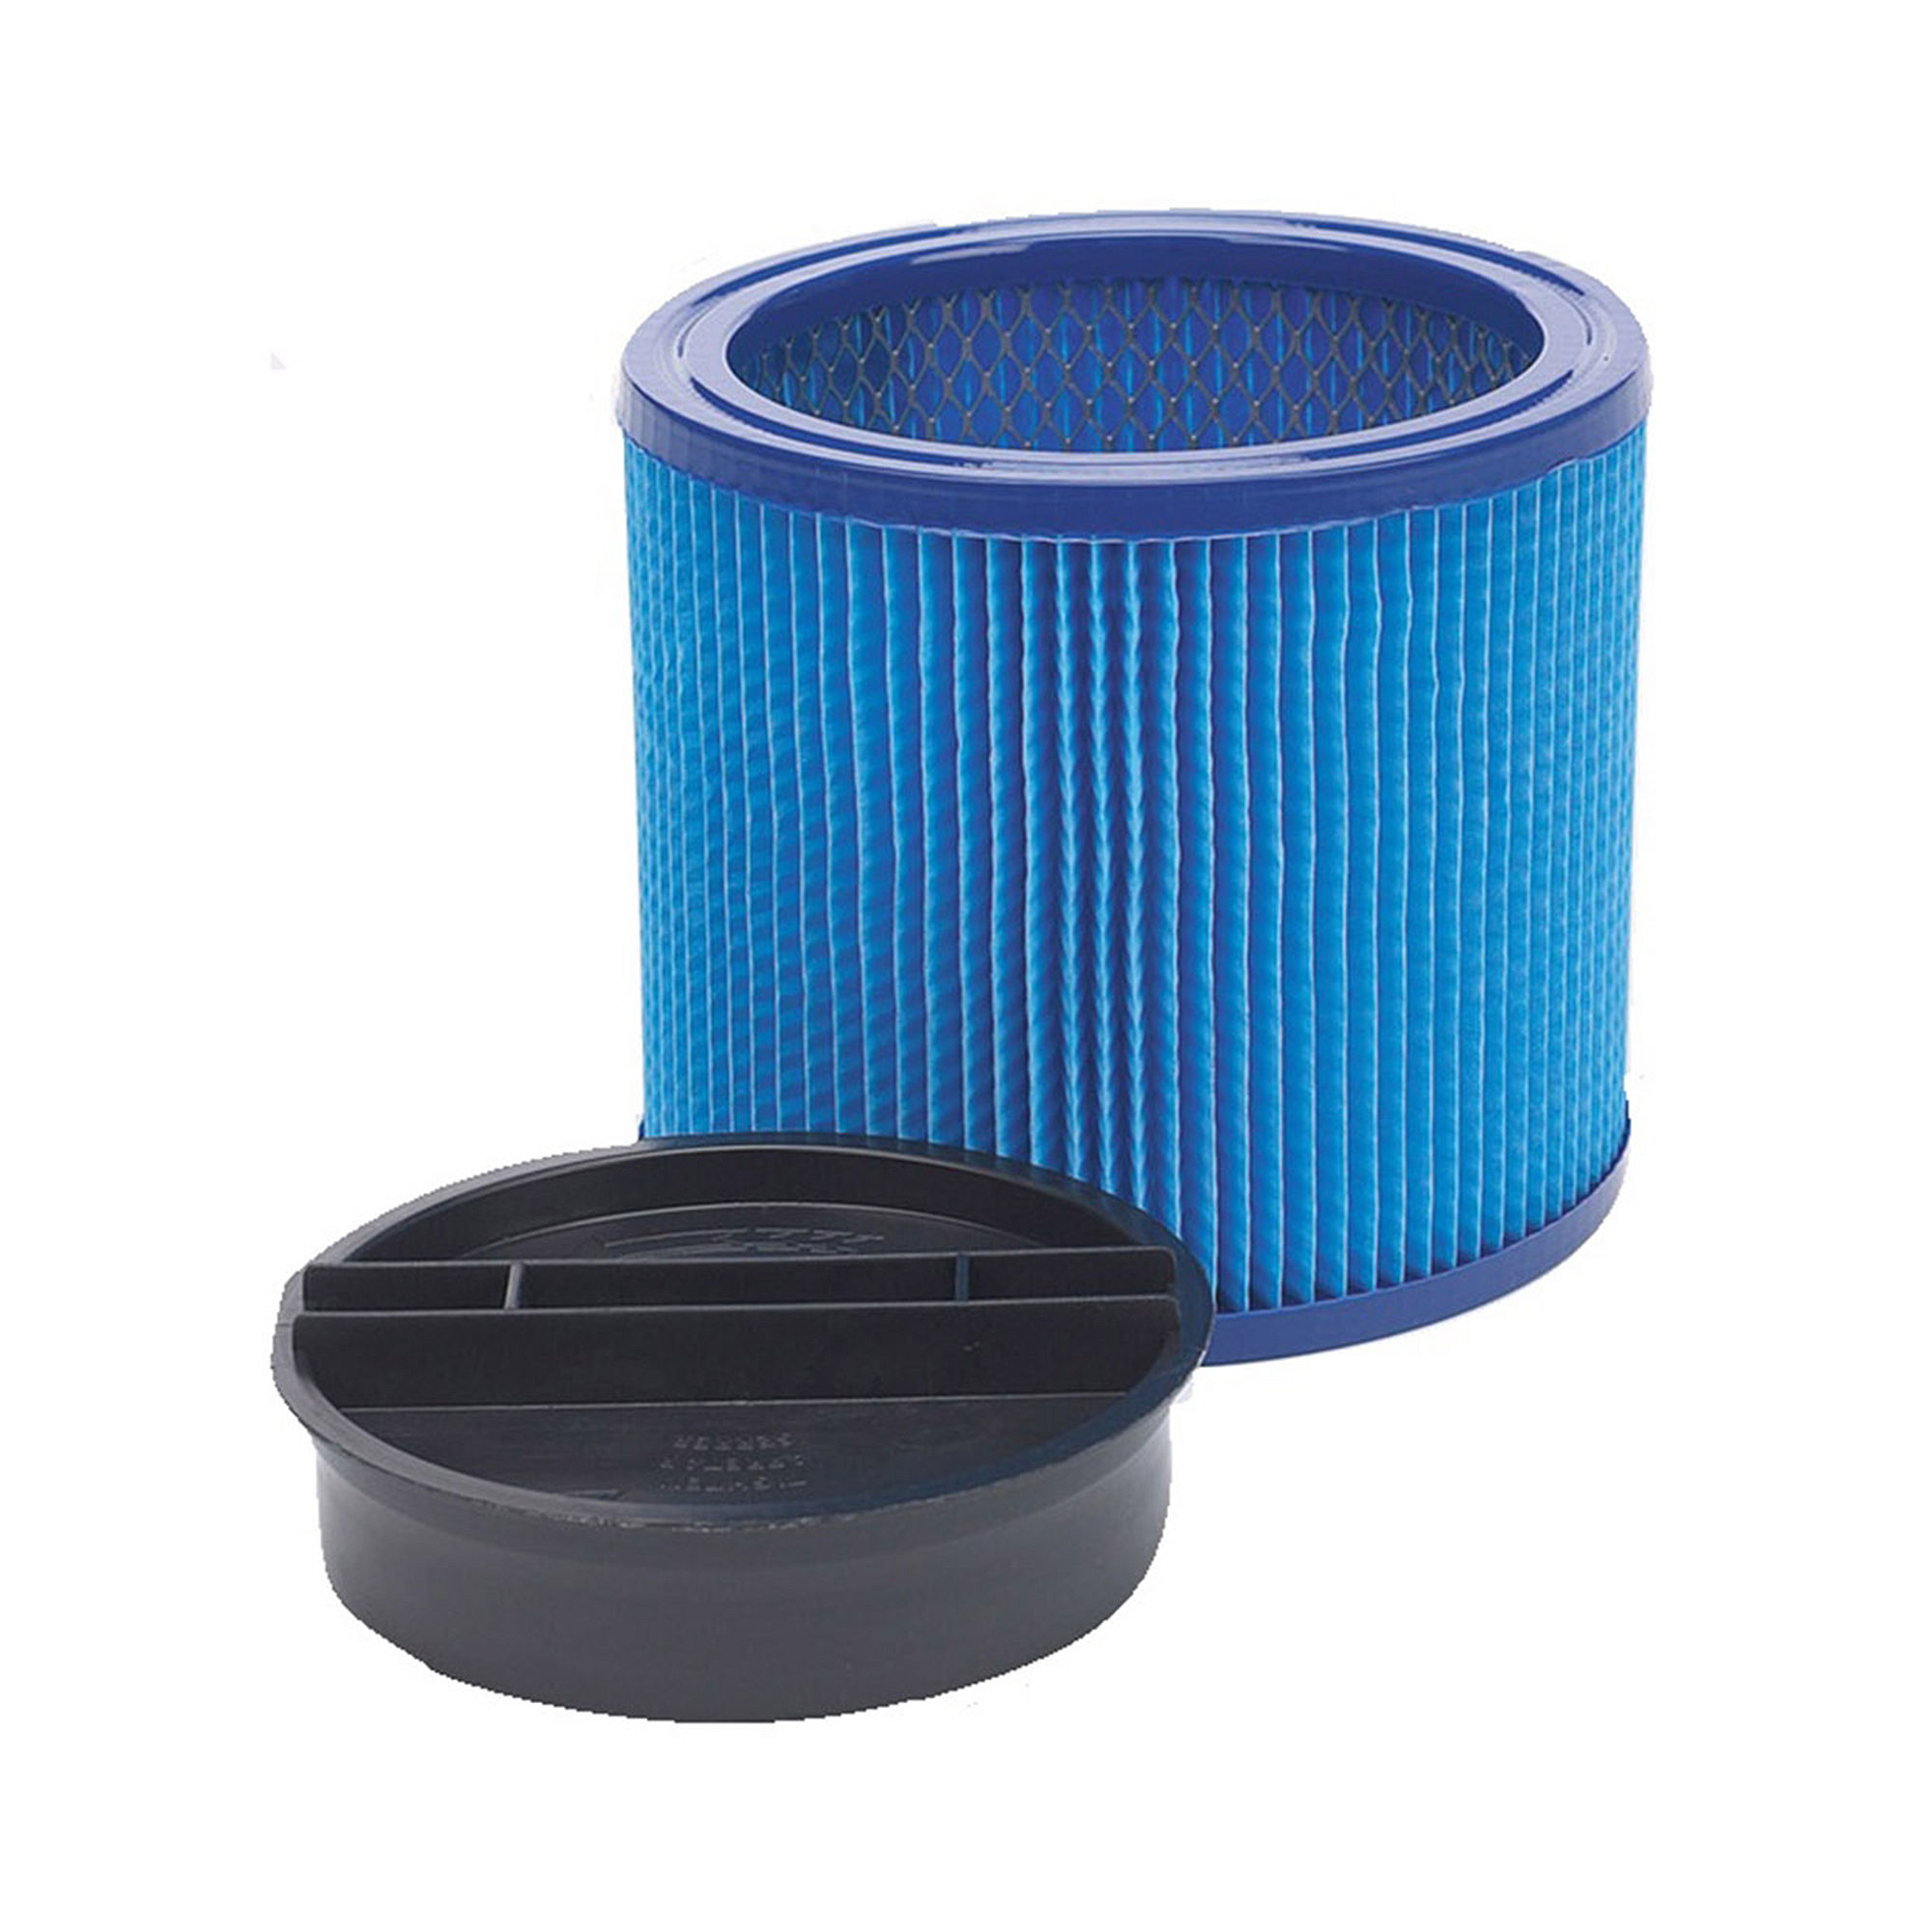 Shop-Vac UltraWeb Cartridge Wet/Dry Filter Attachment